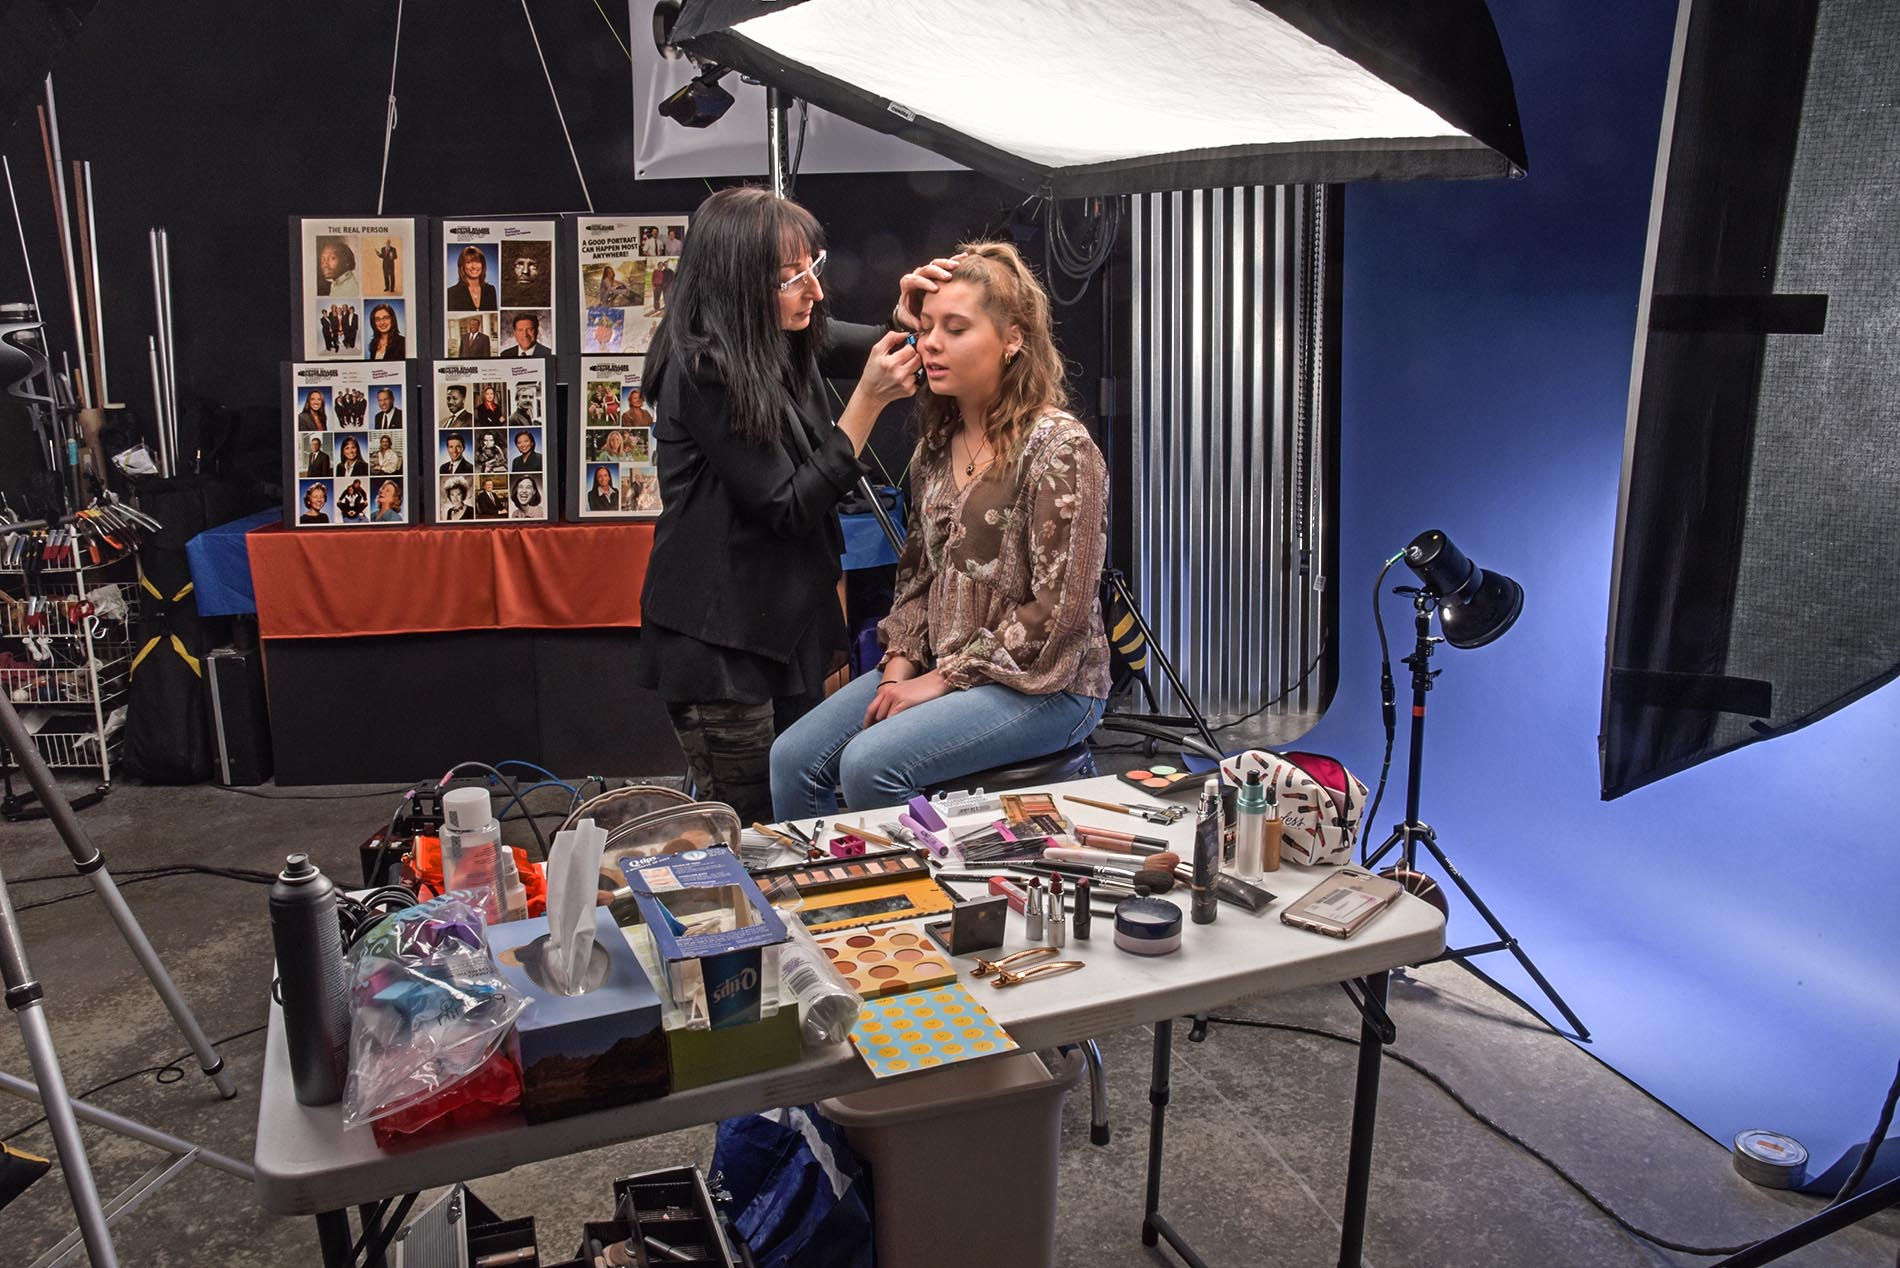 Behind the scenes makeup session in studio with Jacquelyn and Ariana